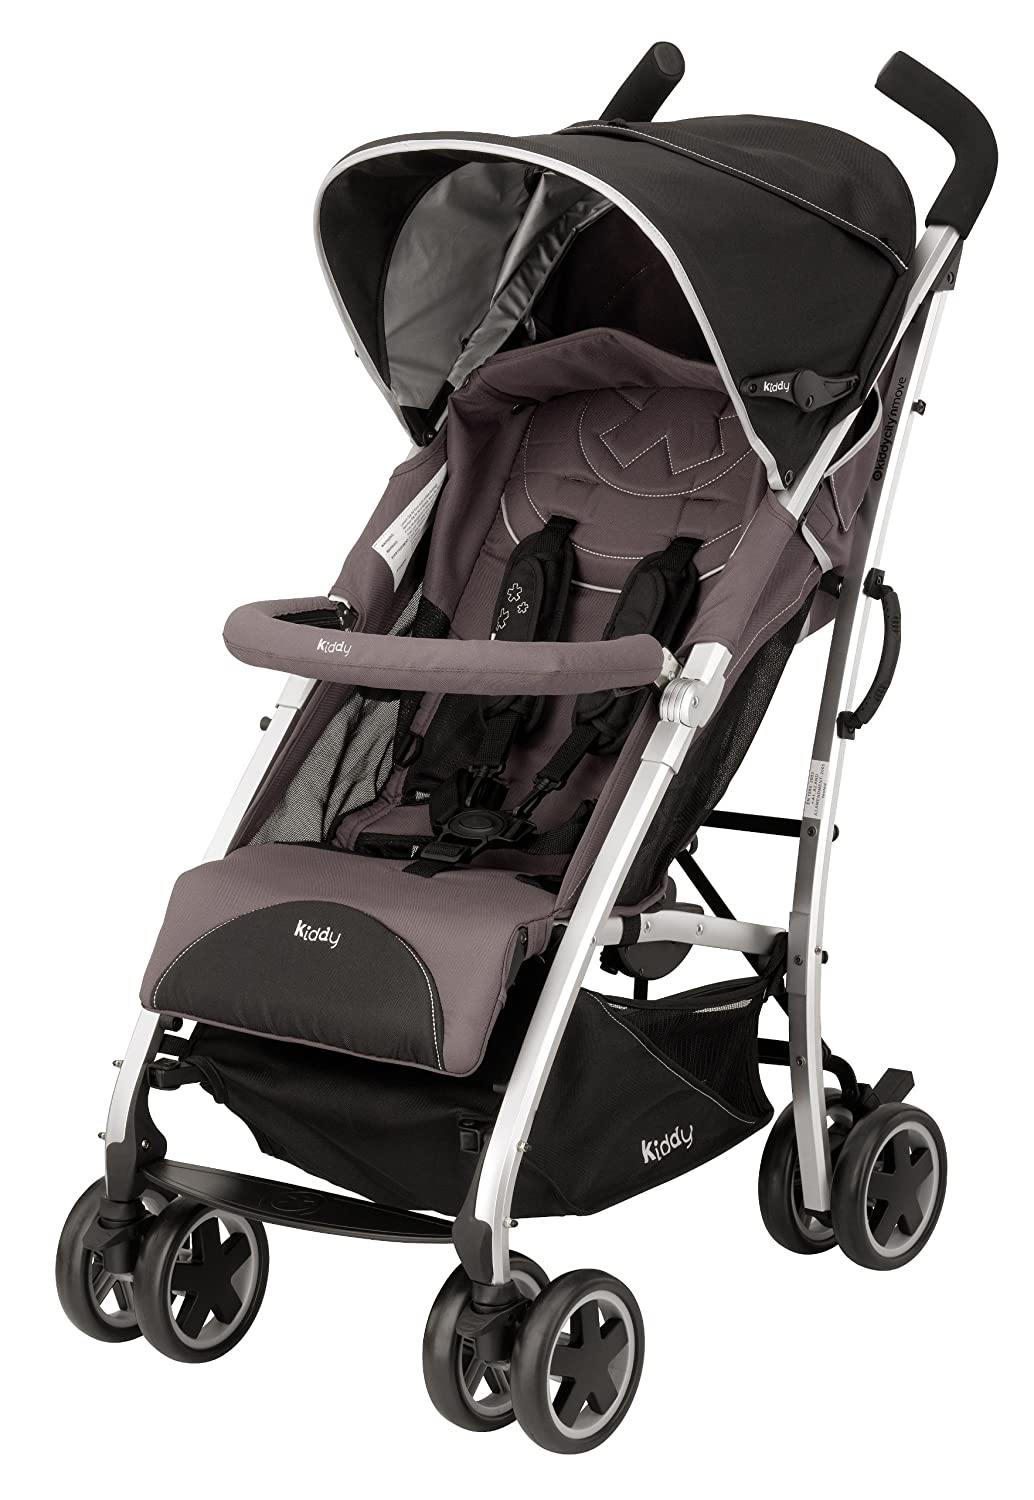 Kiddy City N Move Stroller, Walnut Discontinued by Manufacturer